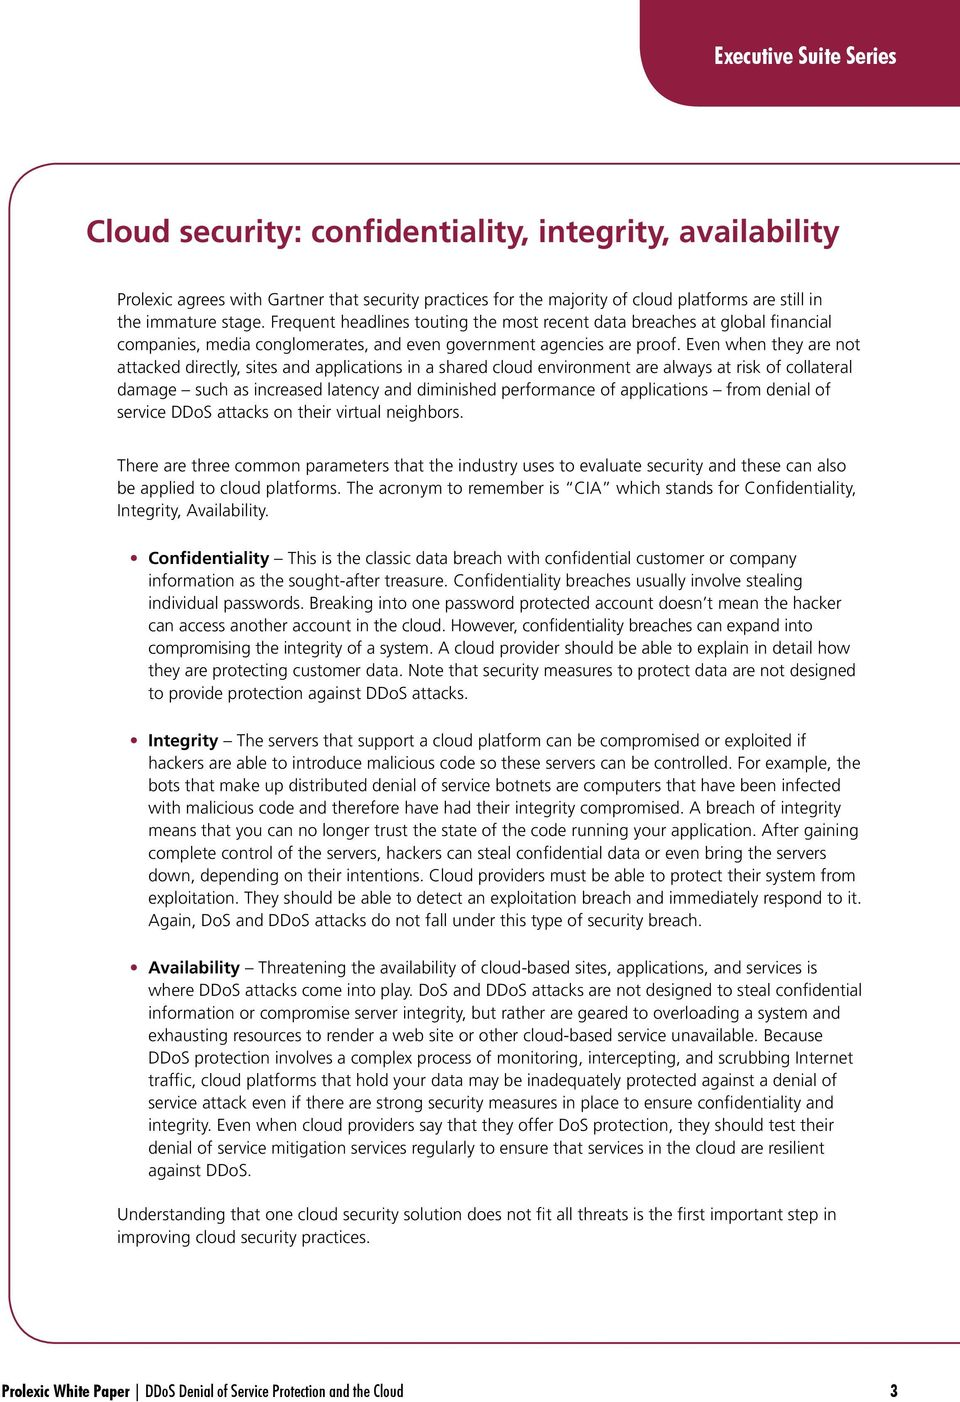 Even when they are not attacked directly, sites and applications in a shared cloud environment are always at risk of collateral damage such as increased latency and diminished performance of